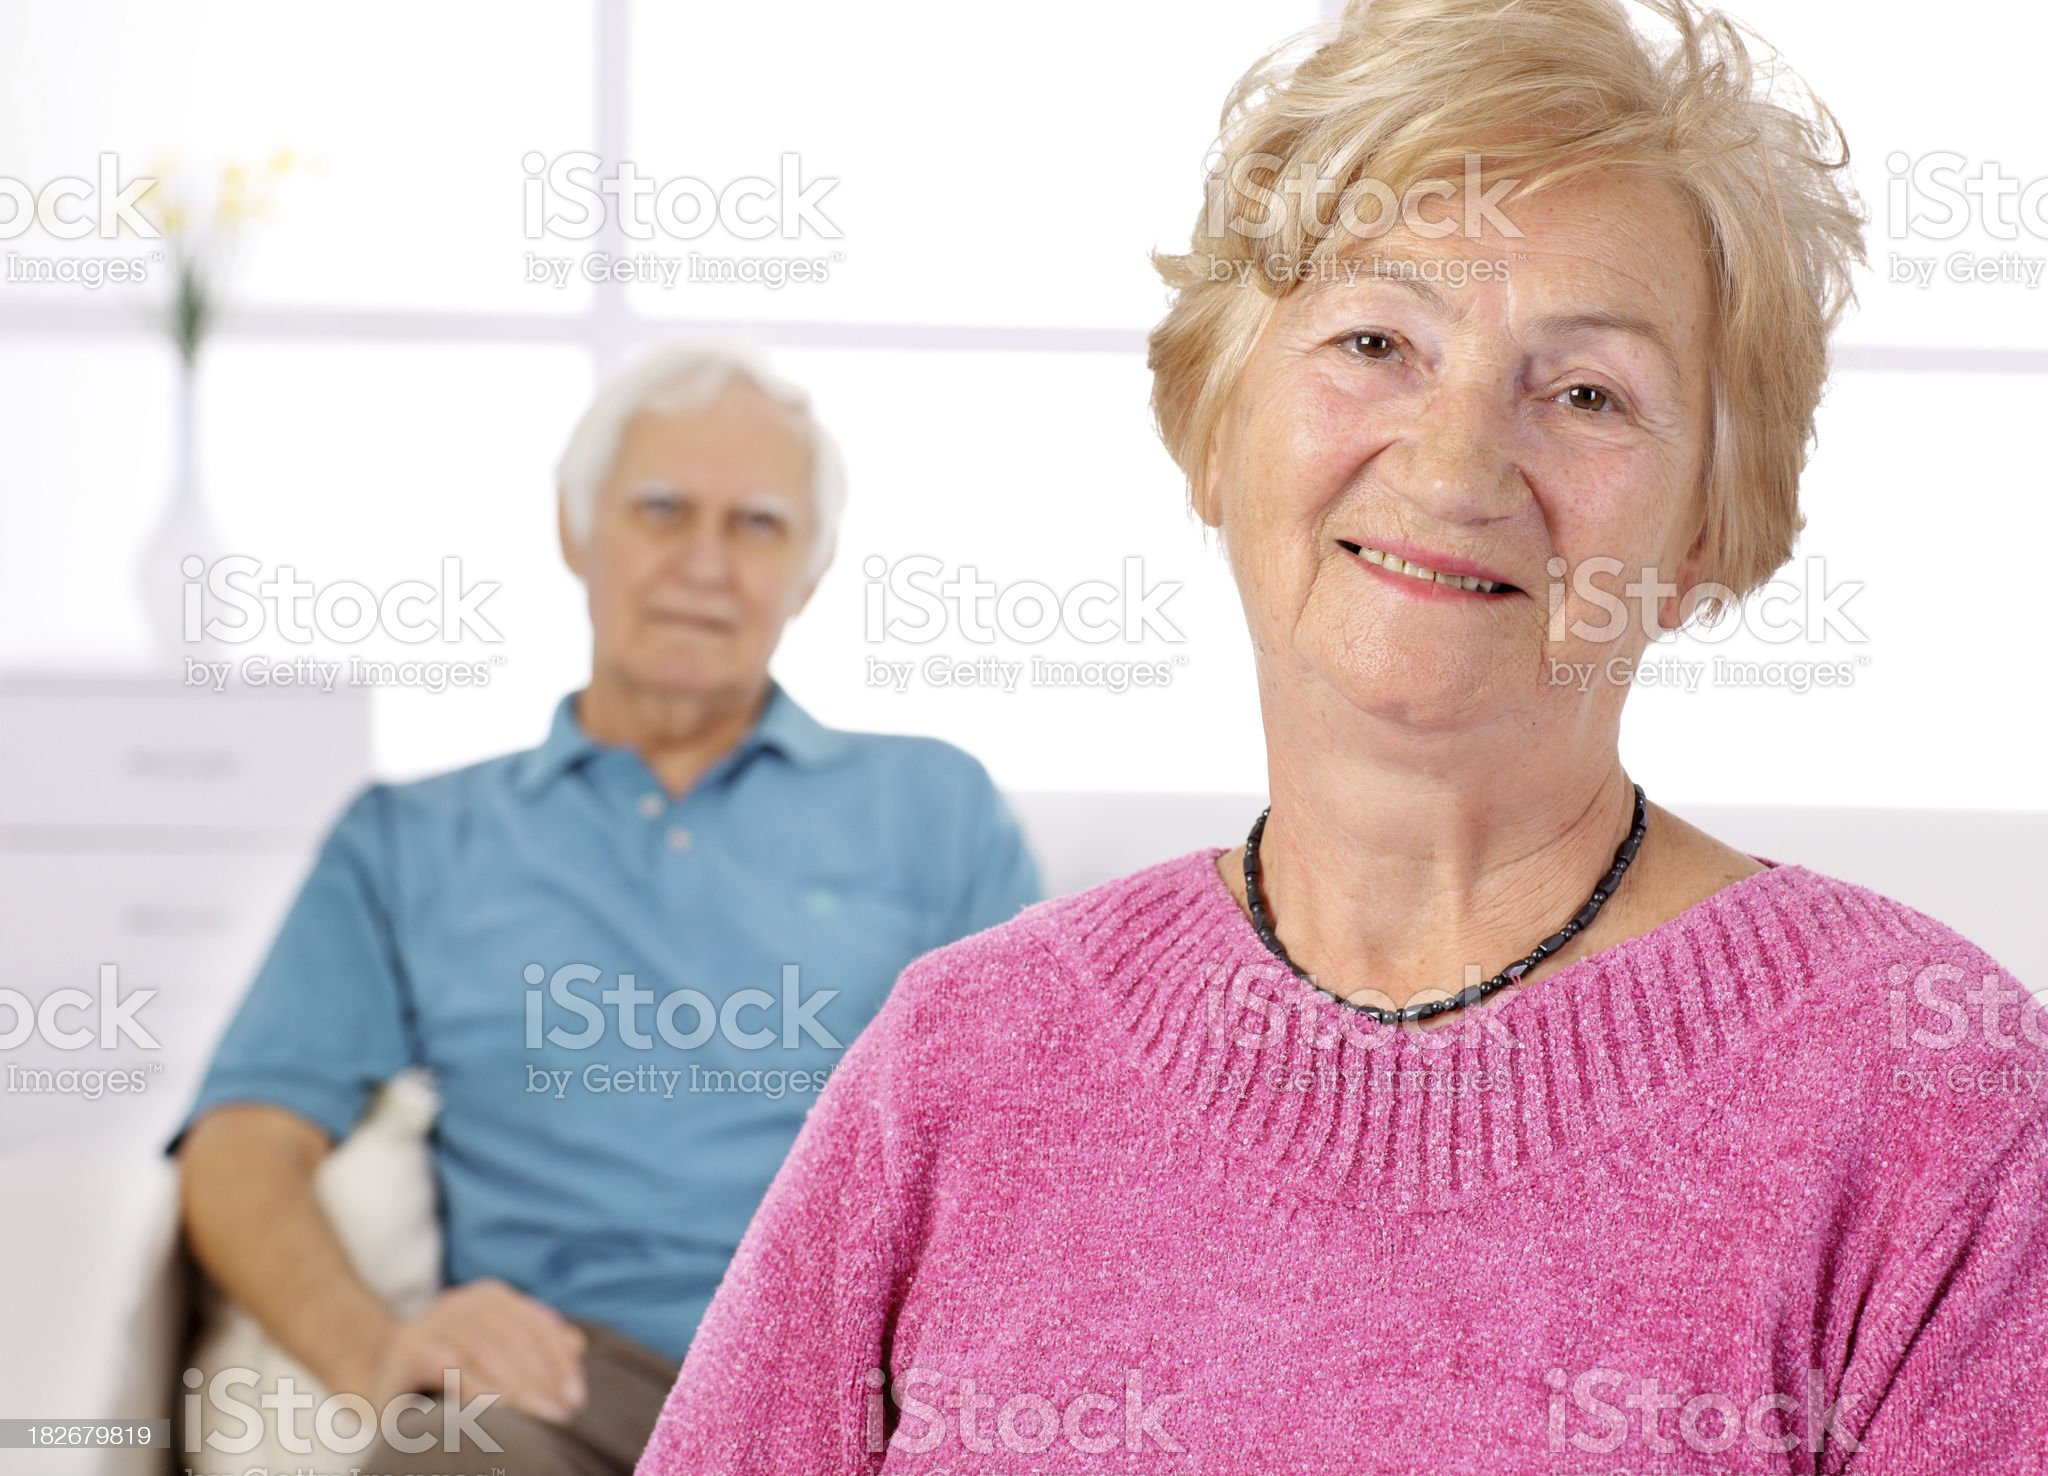 Portrait of a smiling elderly lady. royalty-free stock photo